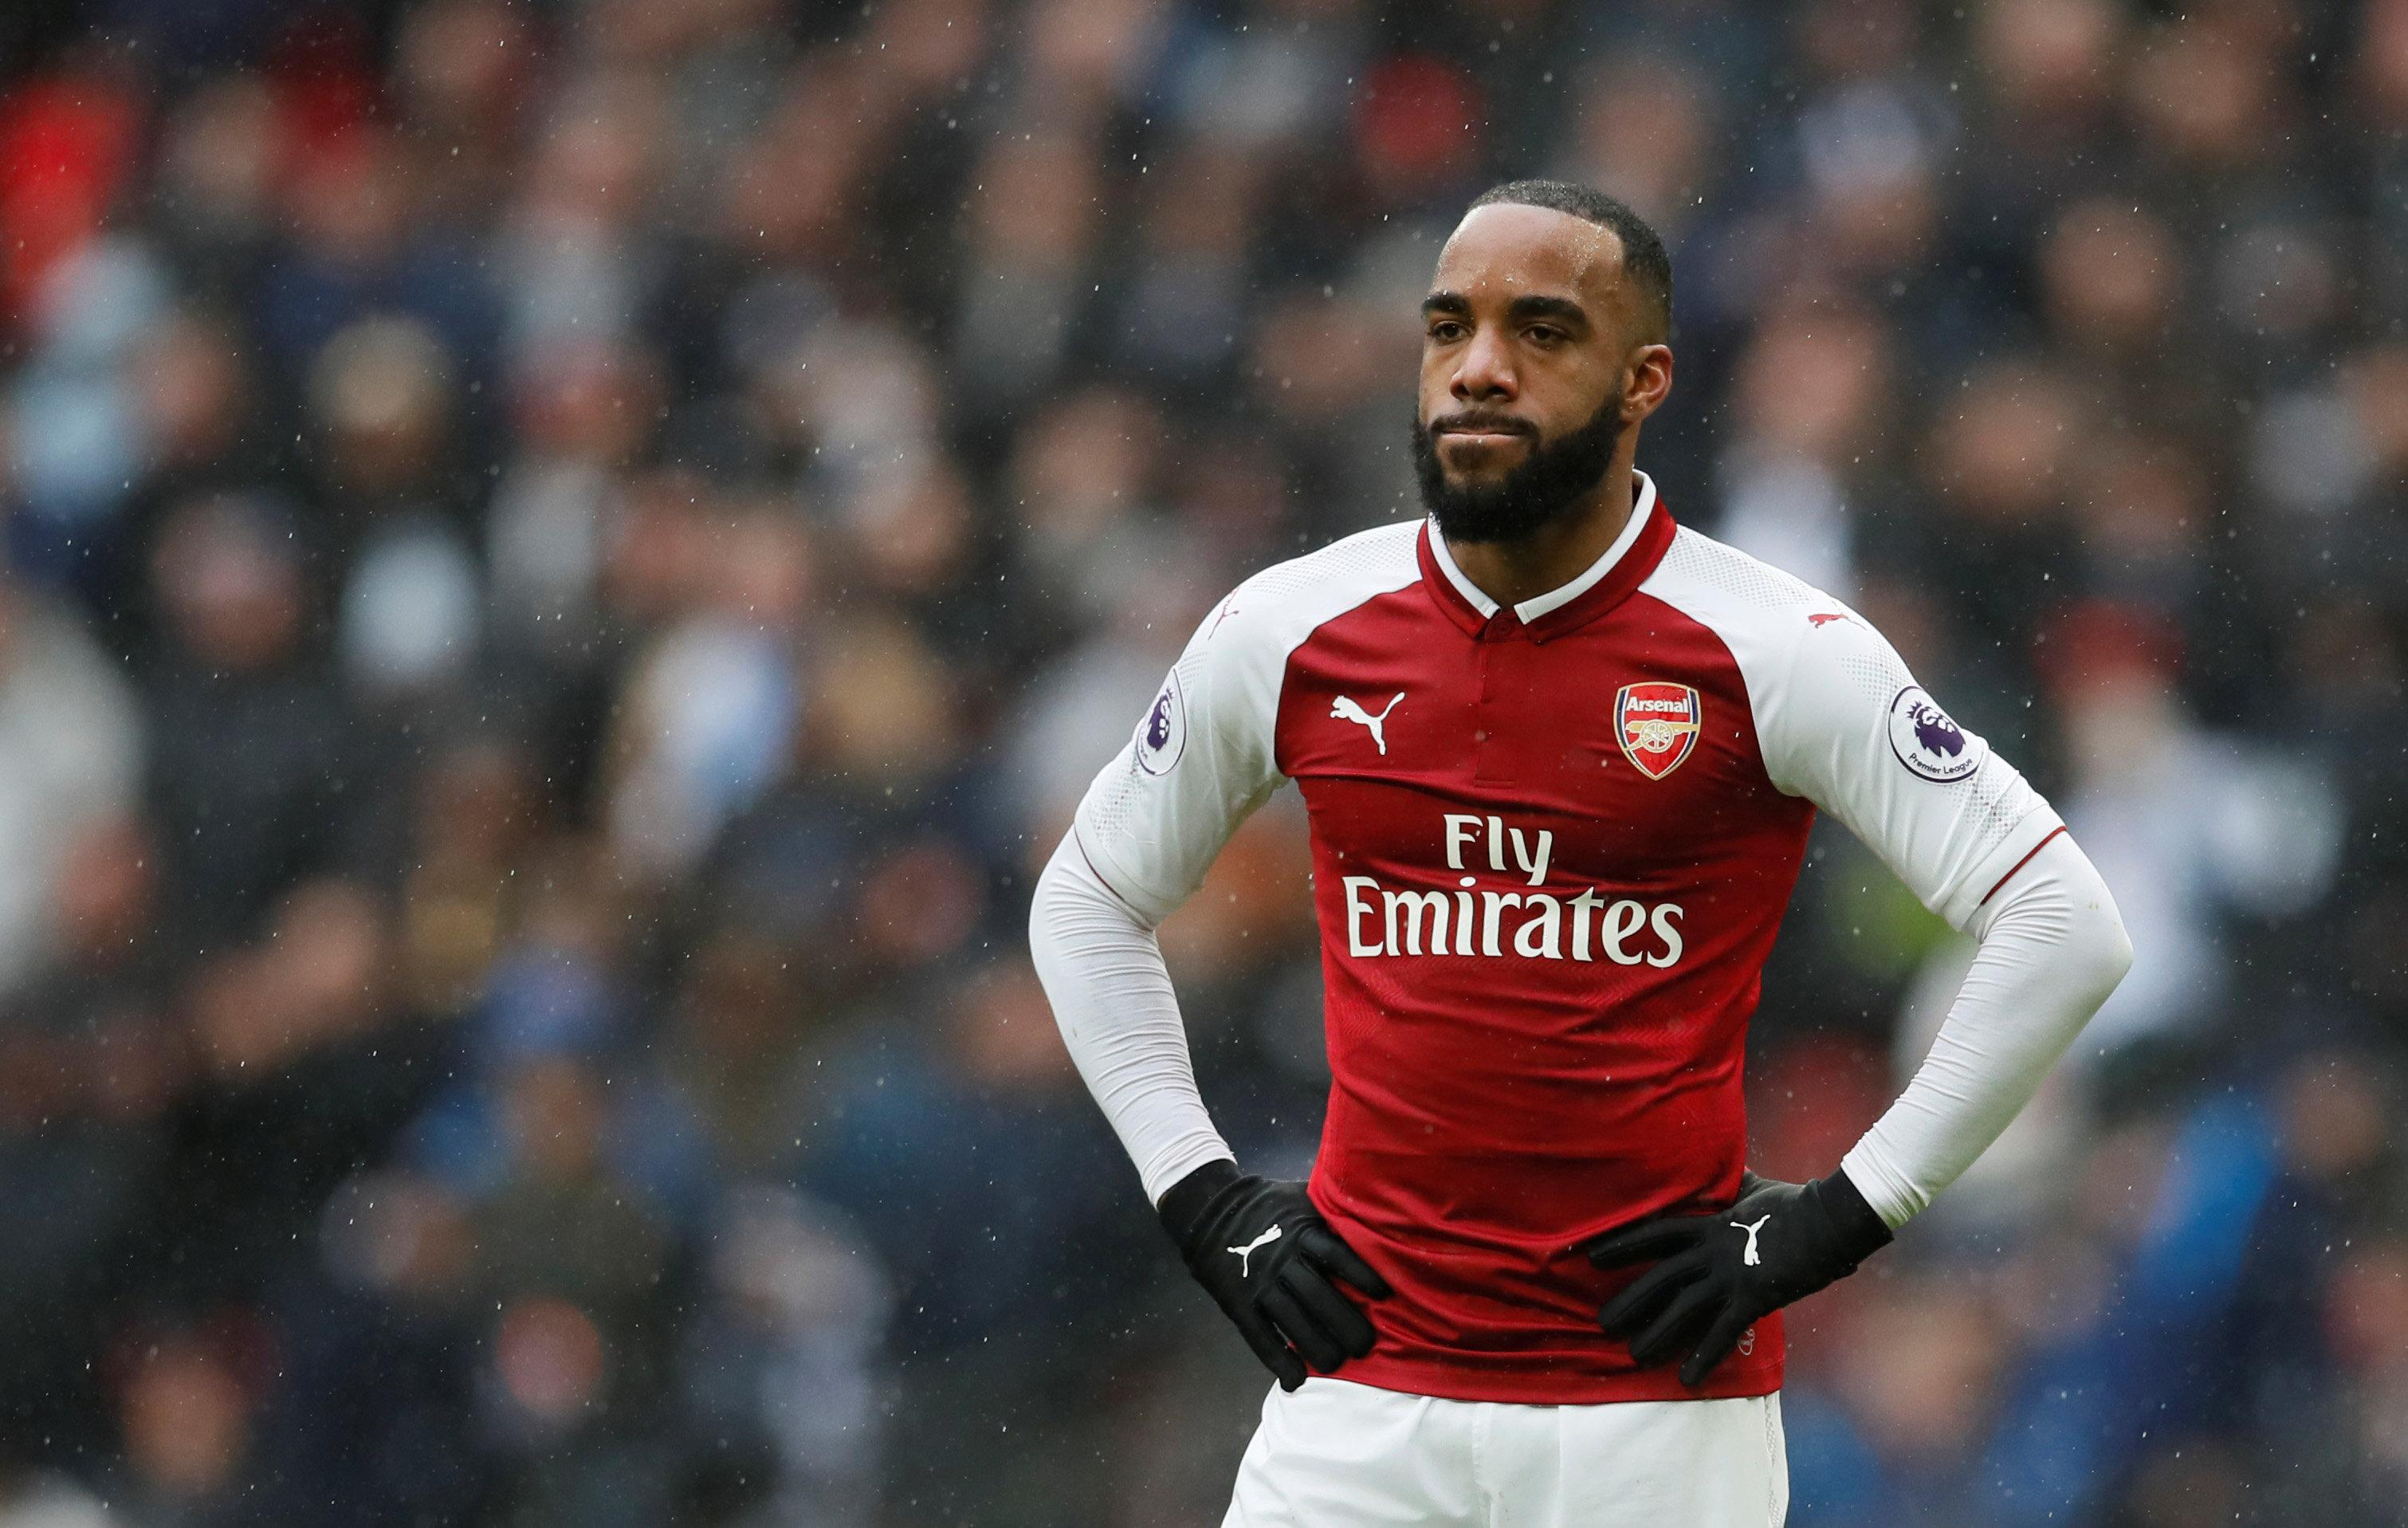 The Gunners will be relying on Lacazette up front